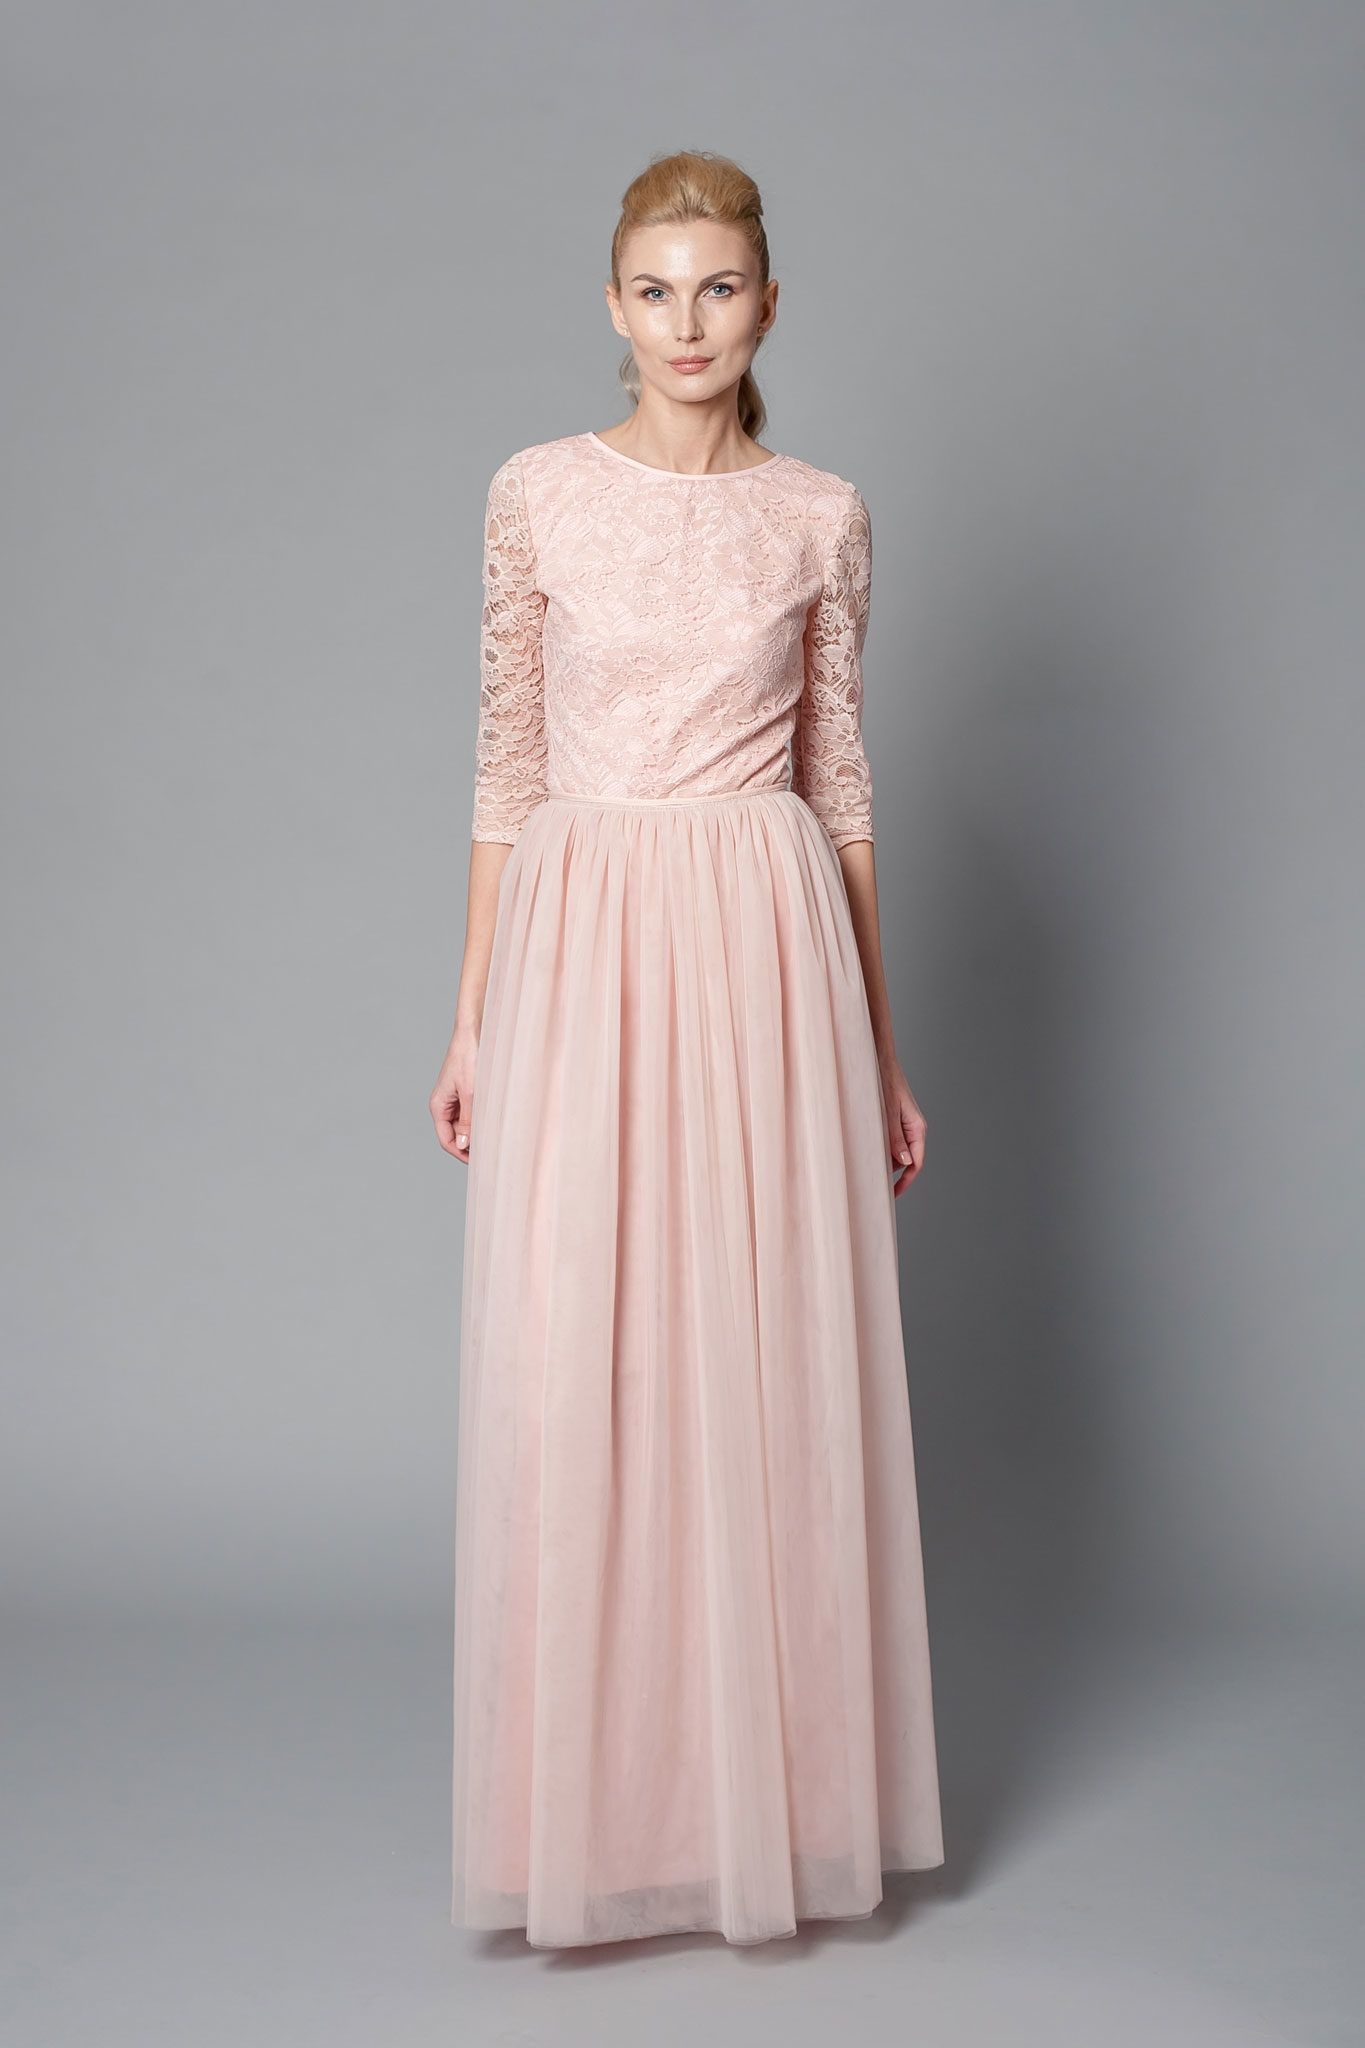 blush pink floor-length bridesmaid dress with tulle skirt